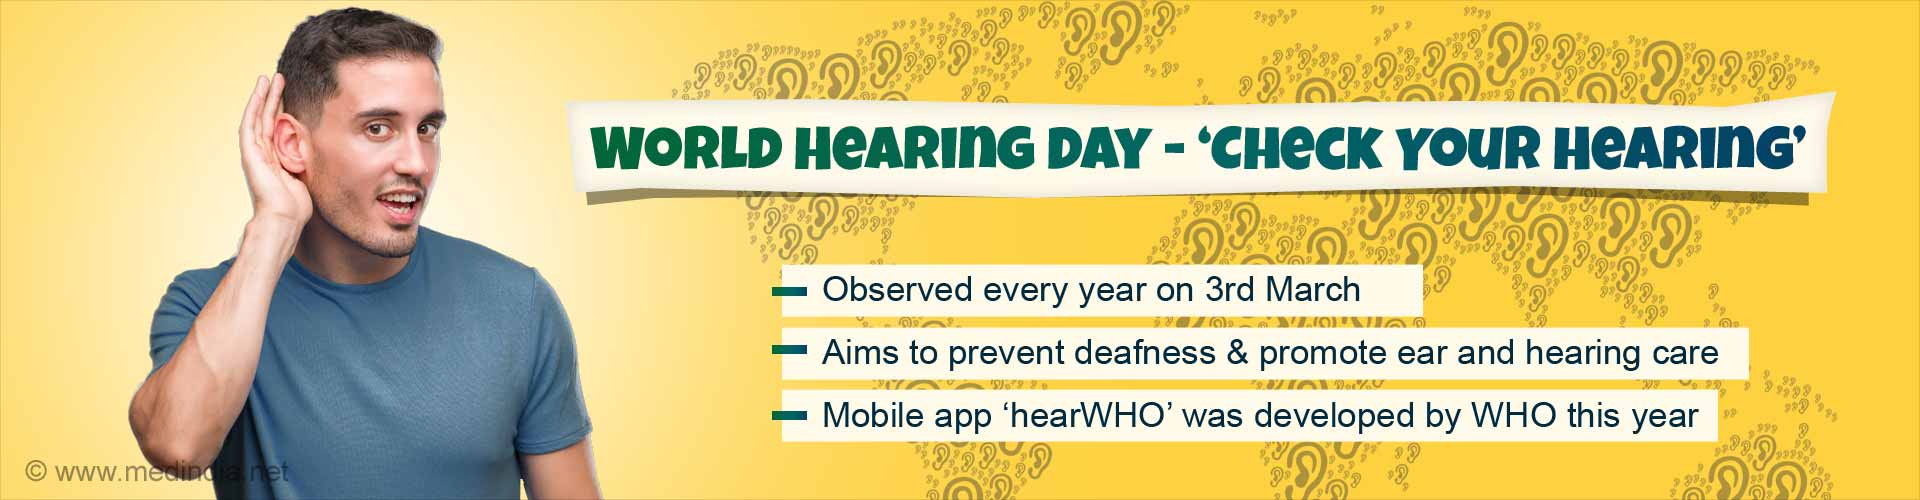 Check Your Hearing – World Hearing Day